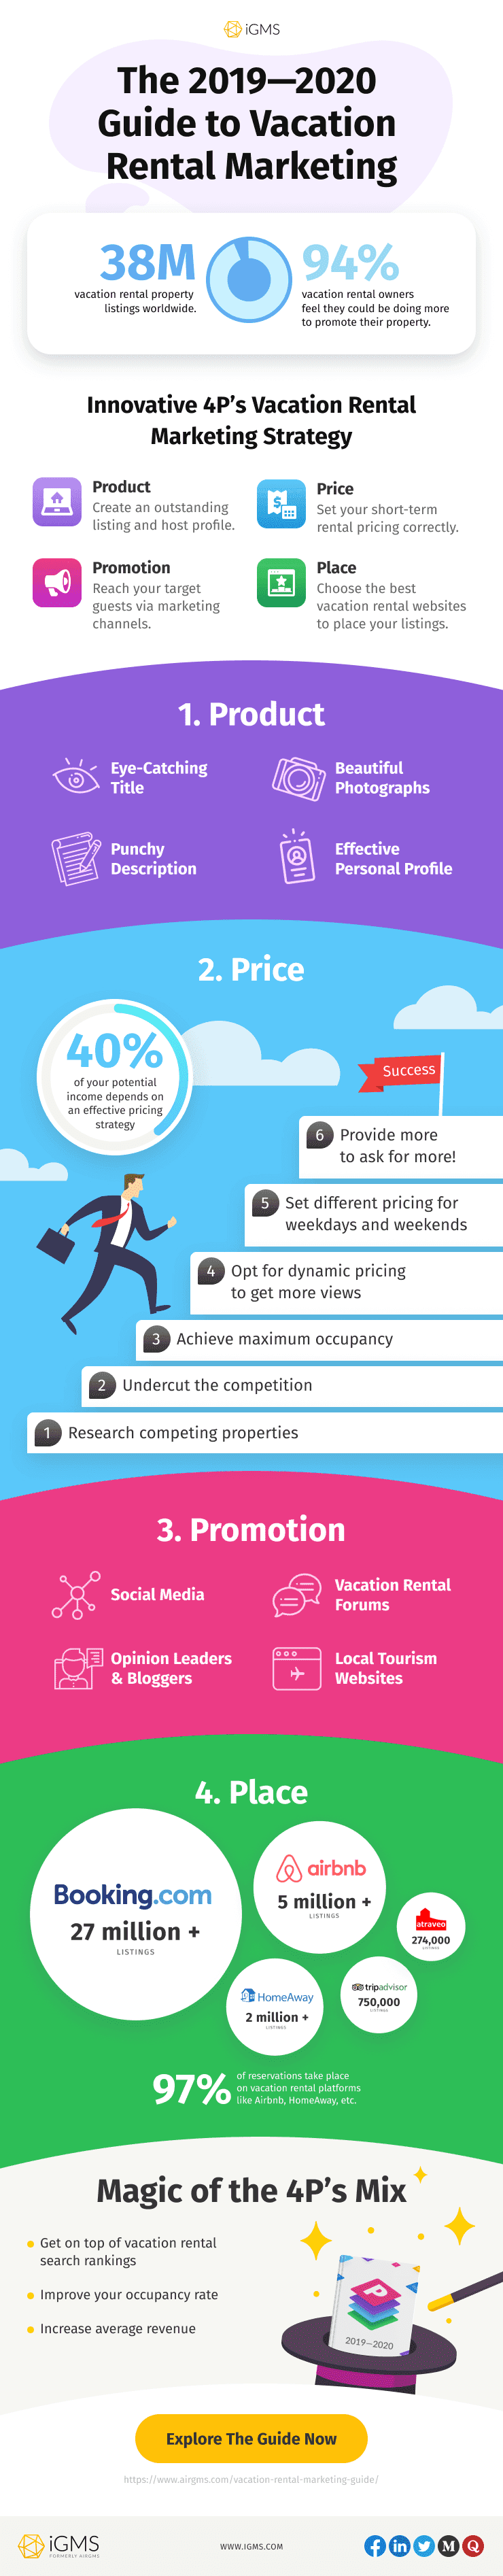 2019—2020 Guide to Vacation Rental Marketing #infographic